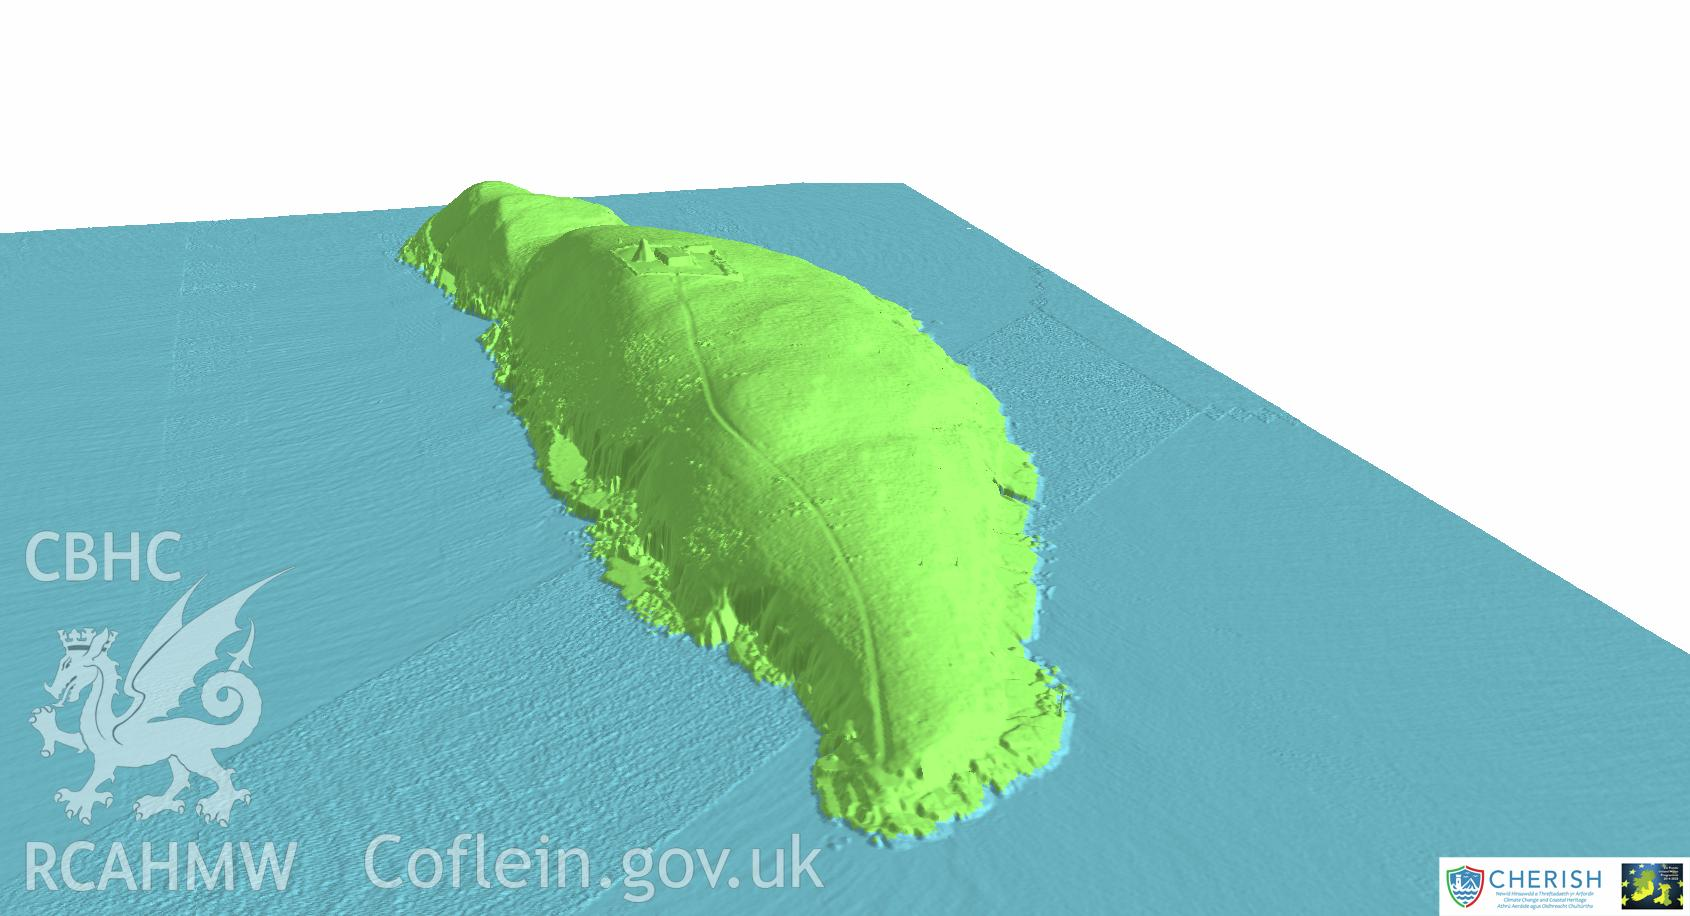 Ynysoedd Tudwal (St. Tudwal?s Islands). Airborne laser scanning (LiDAR) commissioned by the CHERISH Project 2017-2021, flown by Bluesky International LTD at low tide on 24th February 2017. View showing the west island facing north-east.